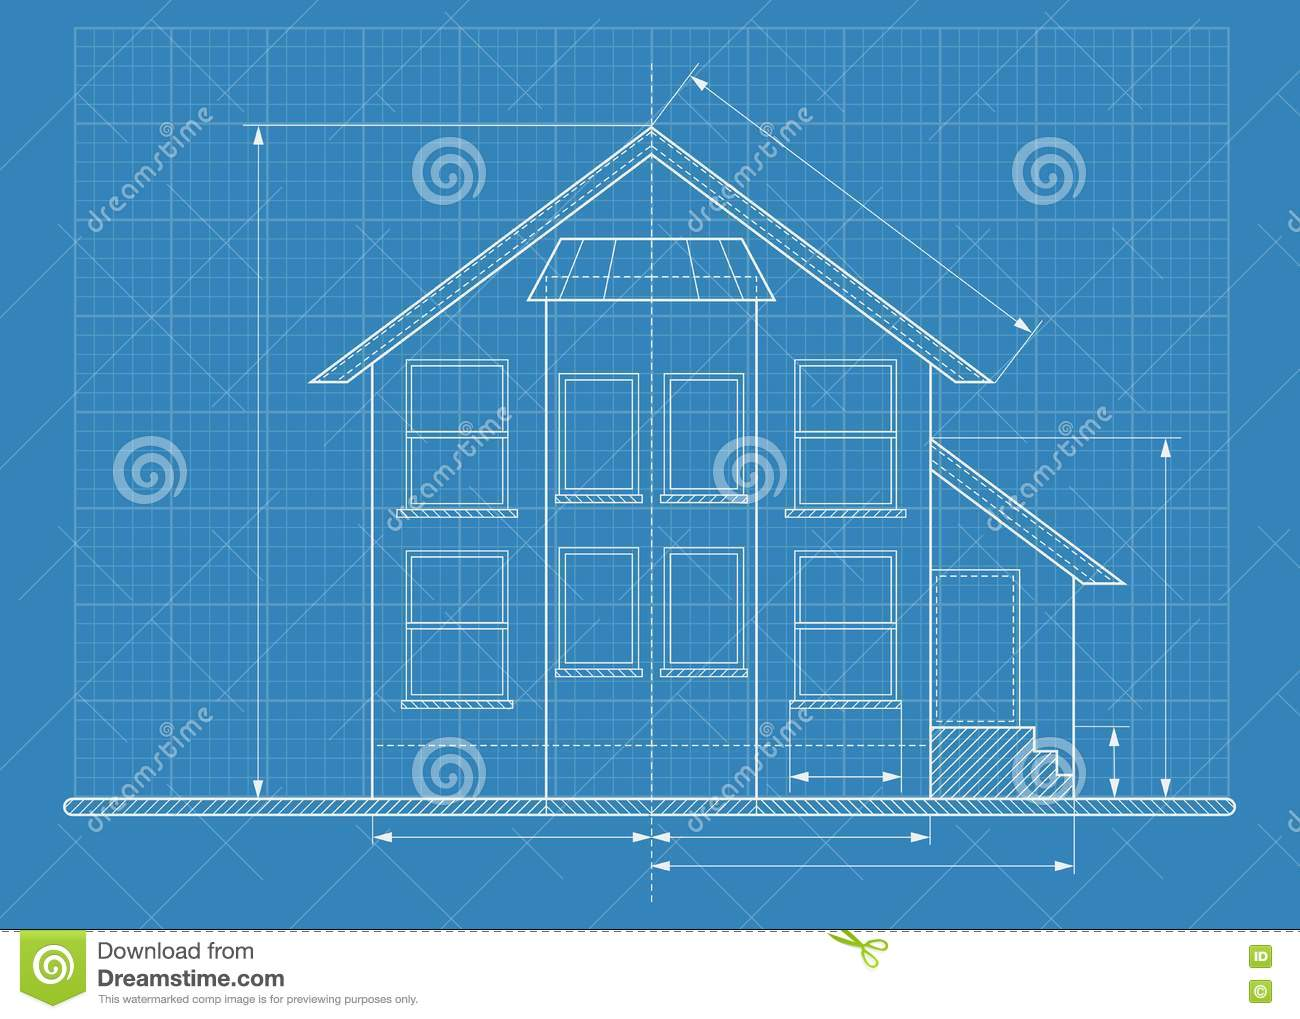 Technical drawing house blueprint stock vector image for Where to get blueprints for a house